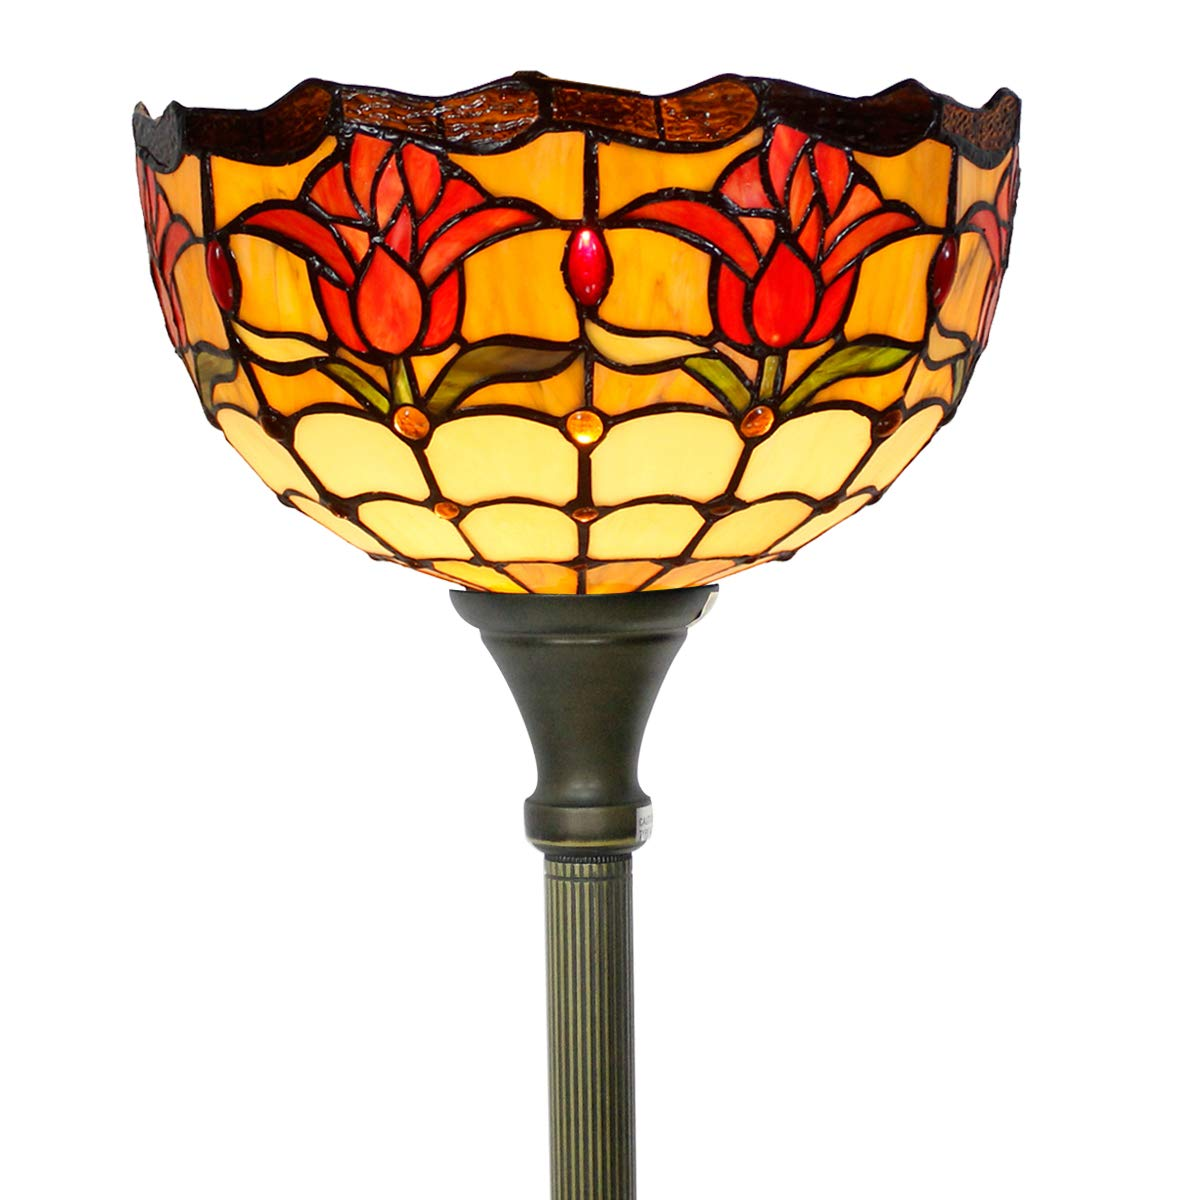 Tiffany Style Torchieres Floor Lamp Table Desk Standing Lighting Wide 12 Tall 66 Inch Tulip Flower Design Cream Stained Glass Lampshade for Living Room Bedroom Antique Set S030 WERFACTORY by WERFACTORY